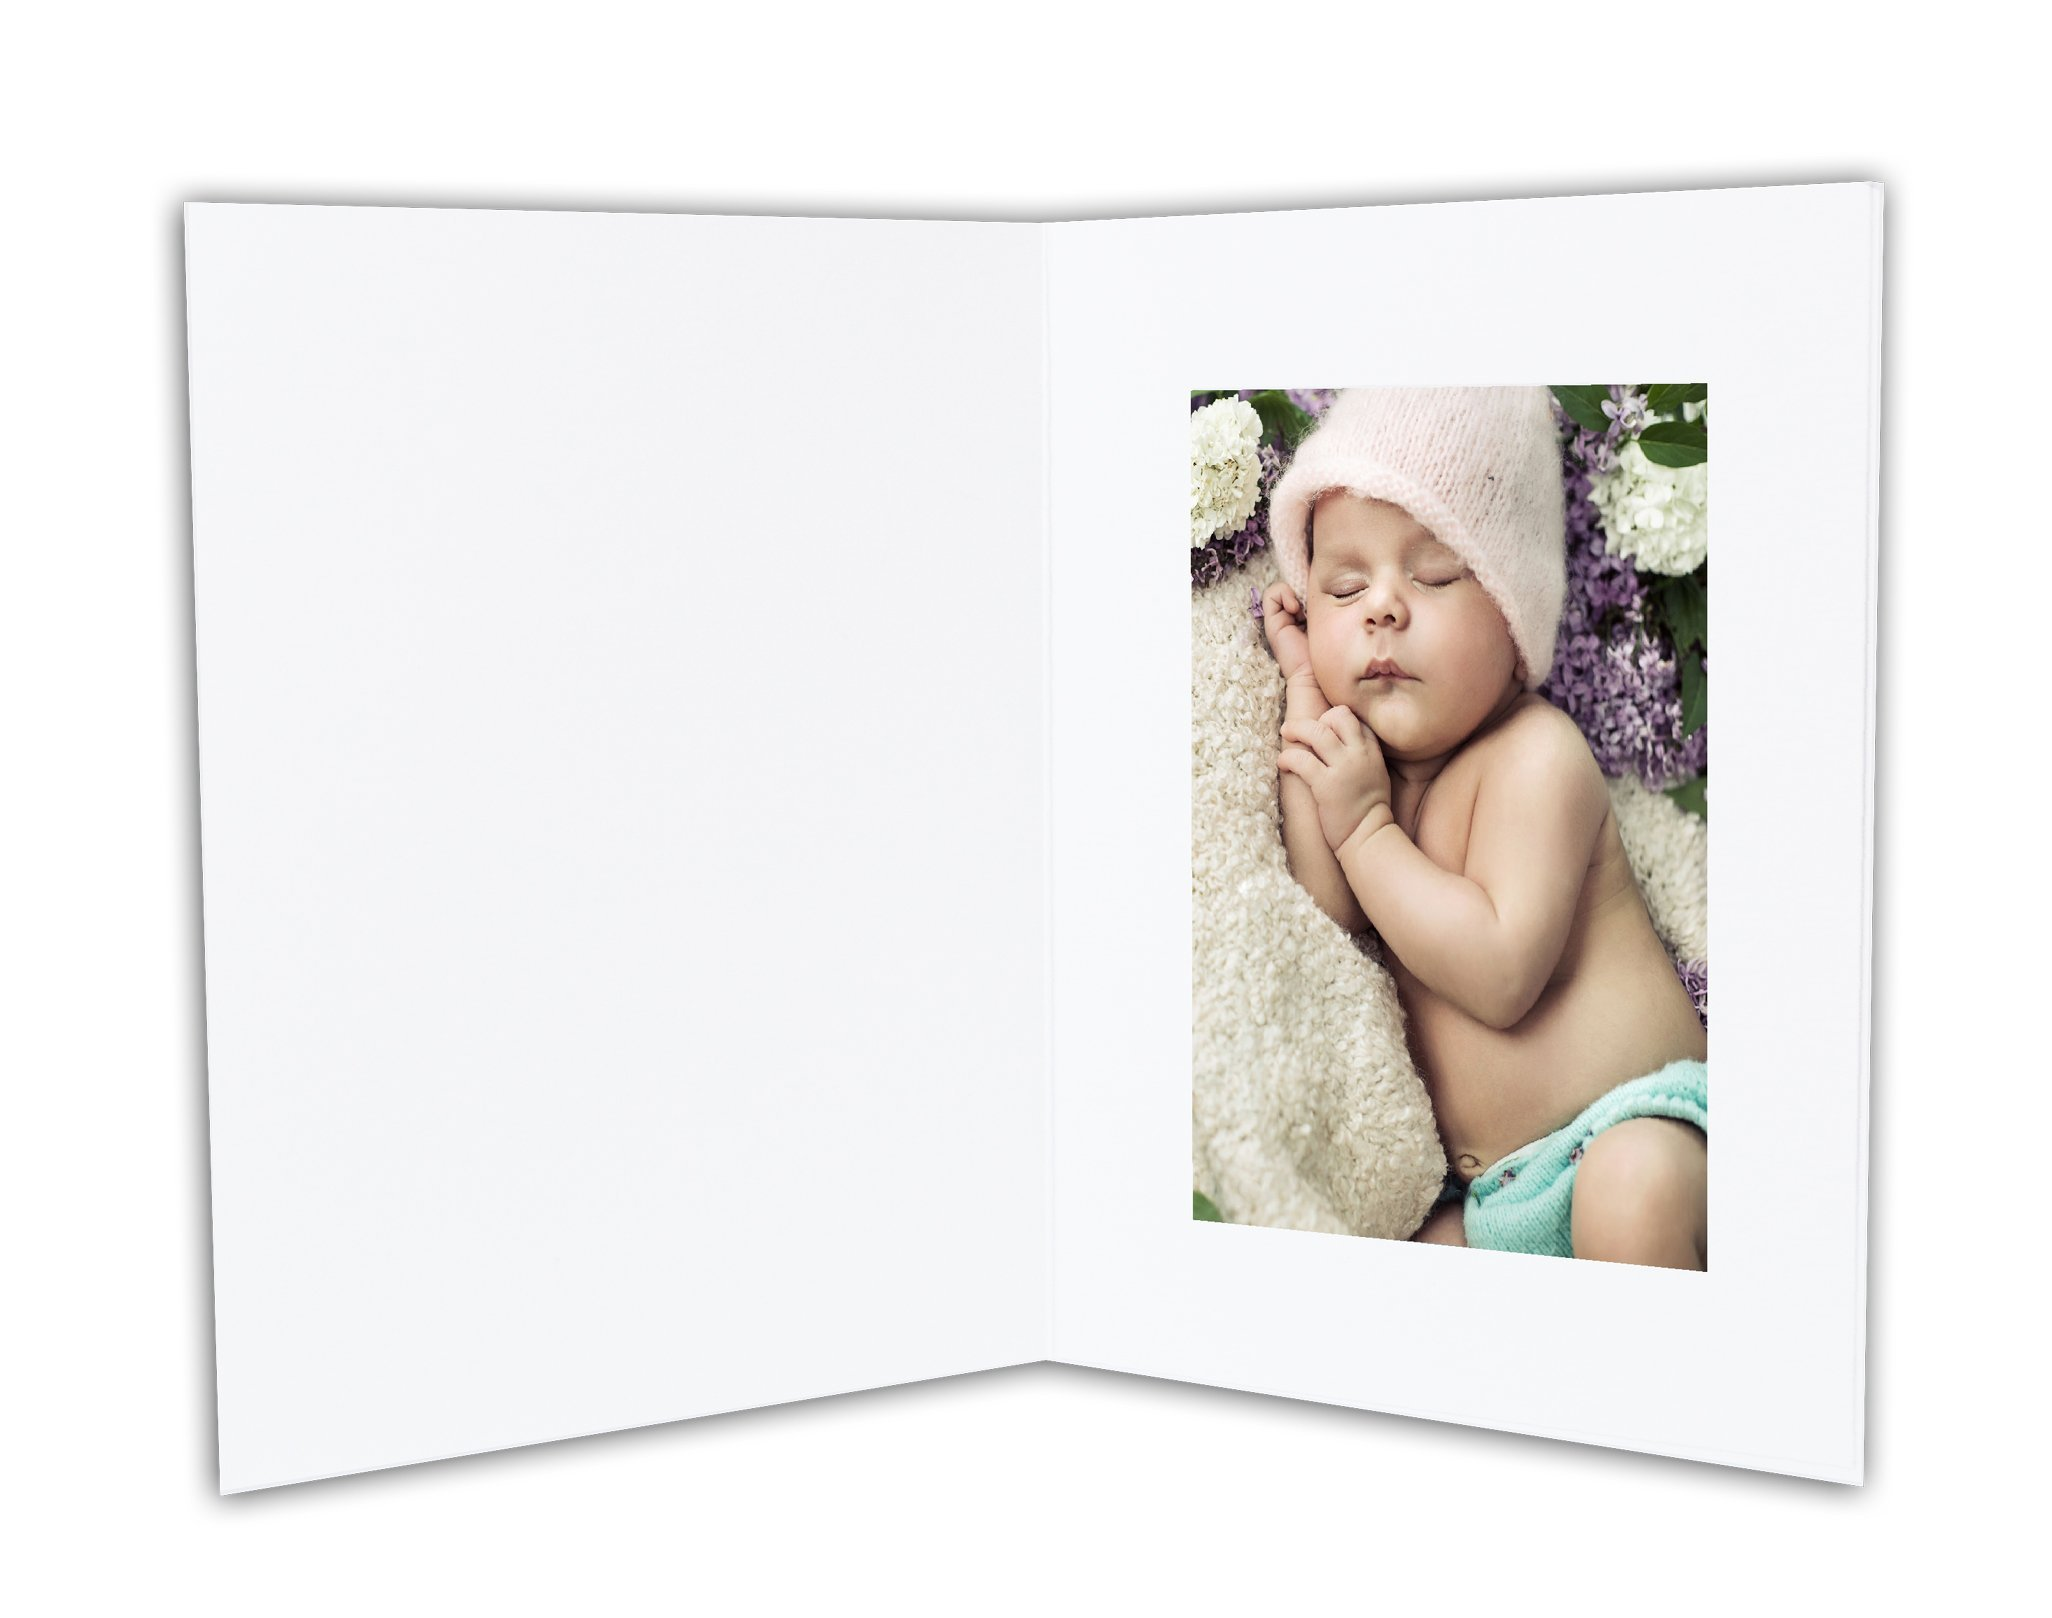 Golden State Art - ANGEL DESIGN COVER - Cardboard Photo Folder For a 4x6 Photo (Pack of 50) GS007 White Color